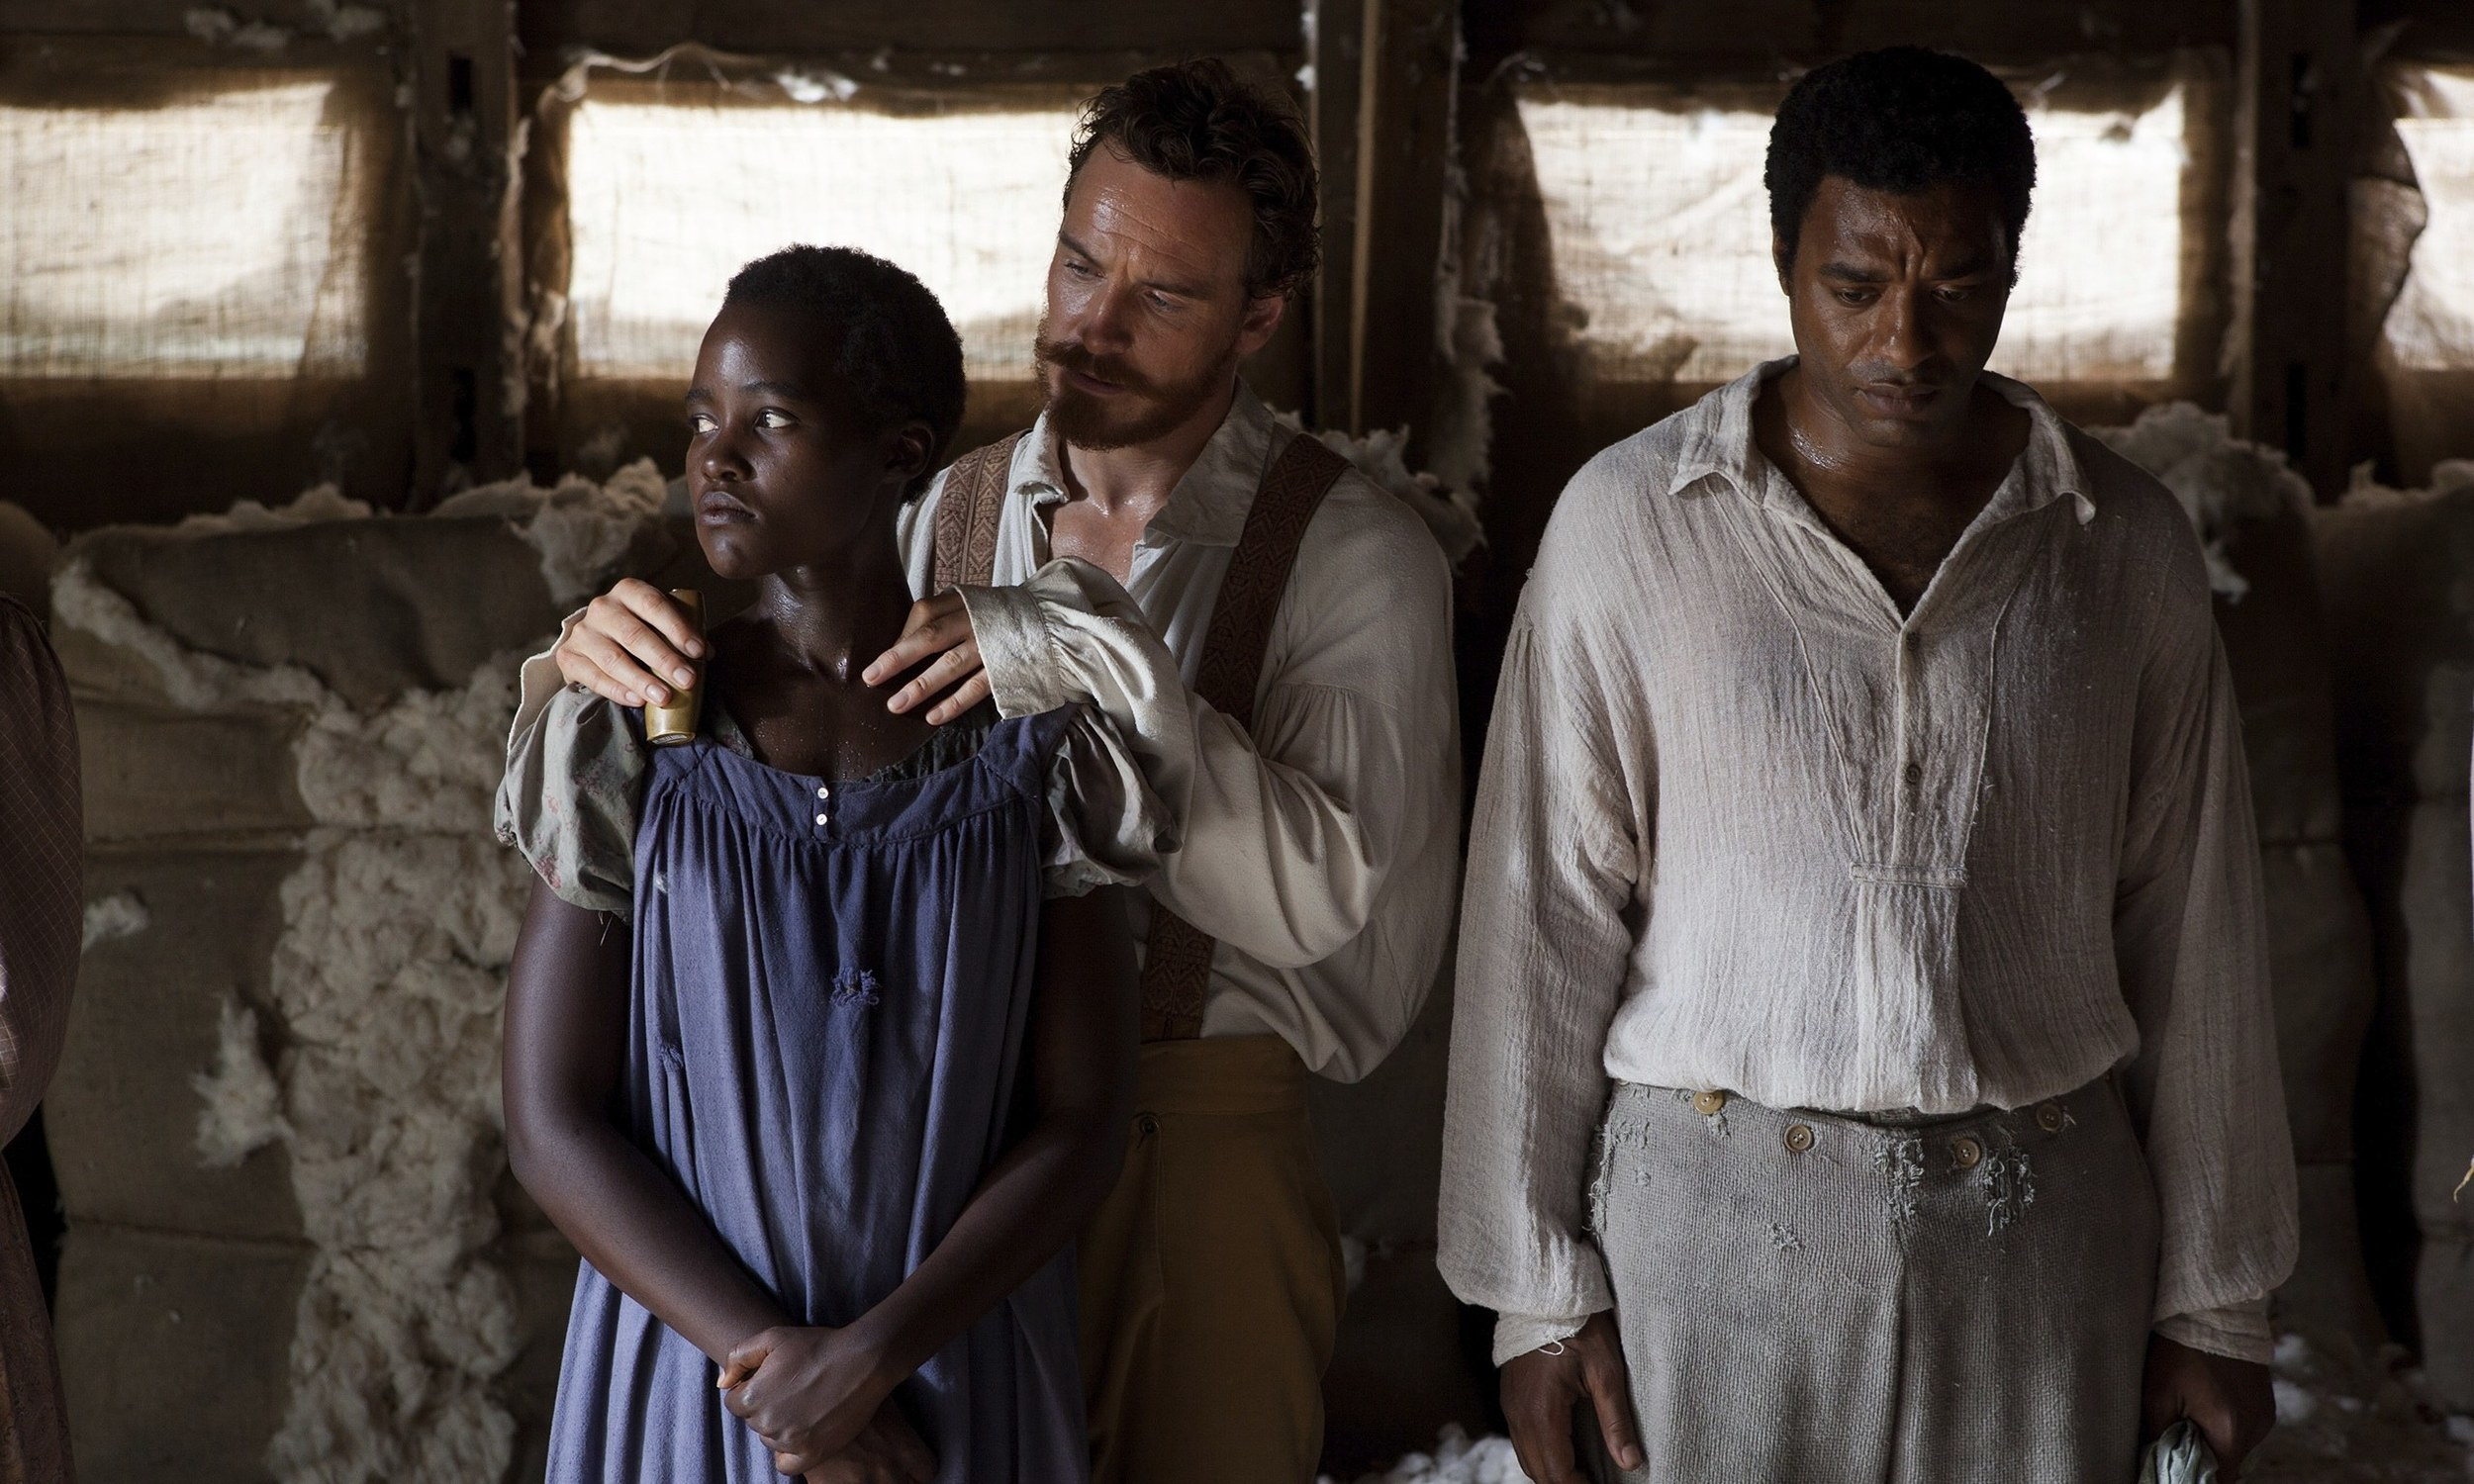 A scene from  12 Years a Slave,  2013, directed by Steve McQueen.